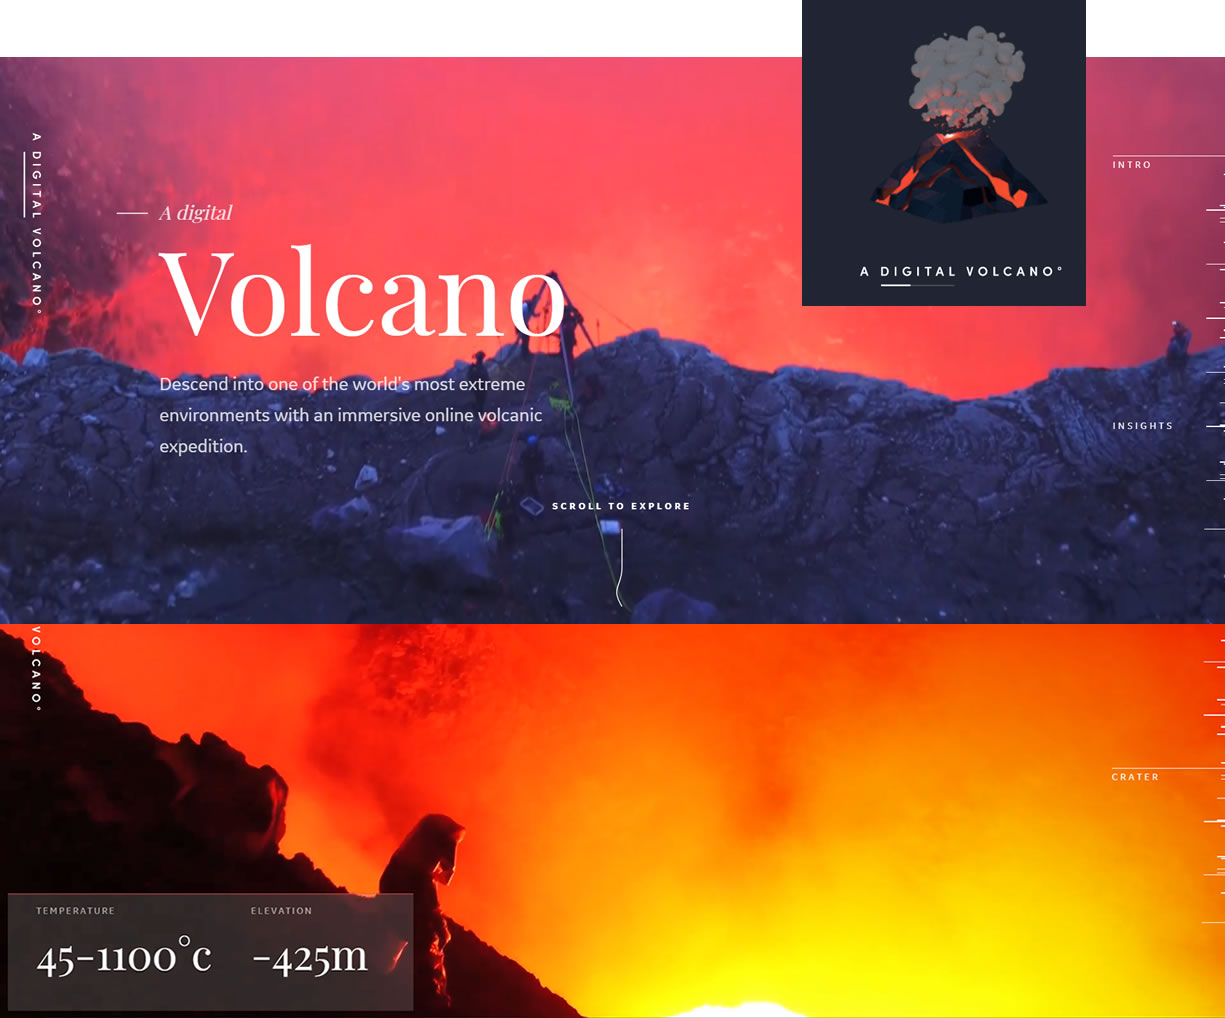 GE - Digital Volcano